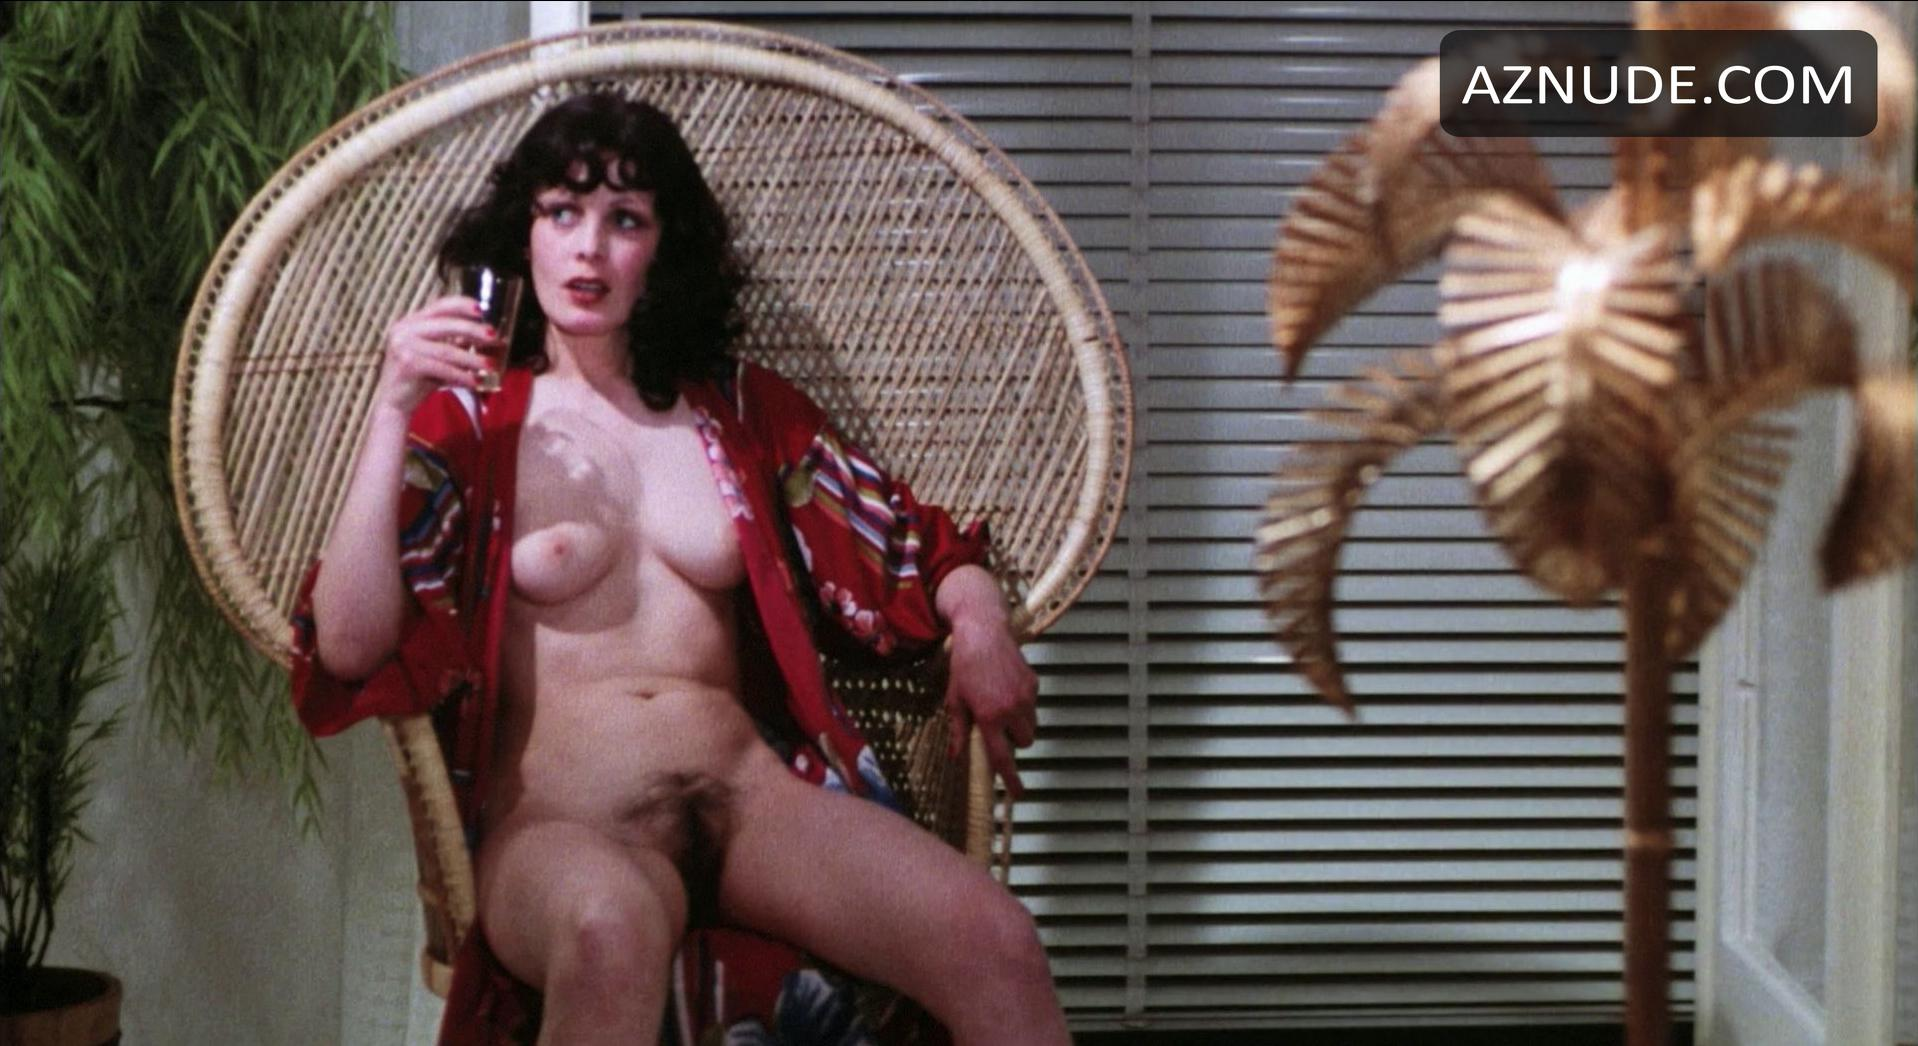 Lina romay pamela stanford celestine maid at your service - 2 9